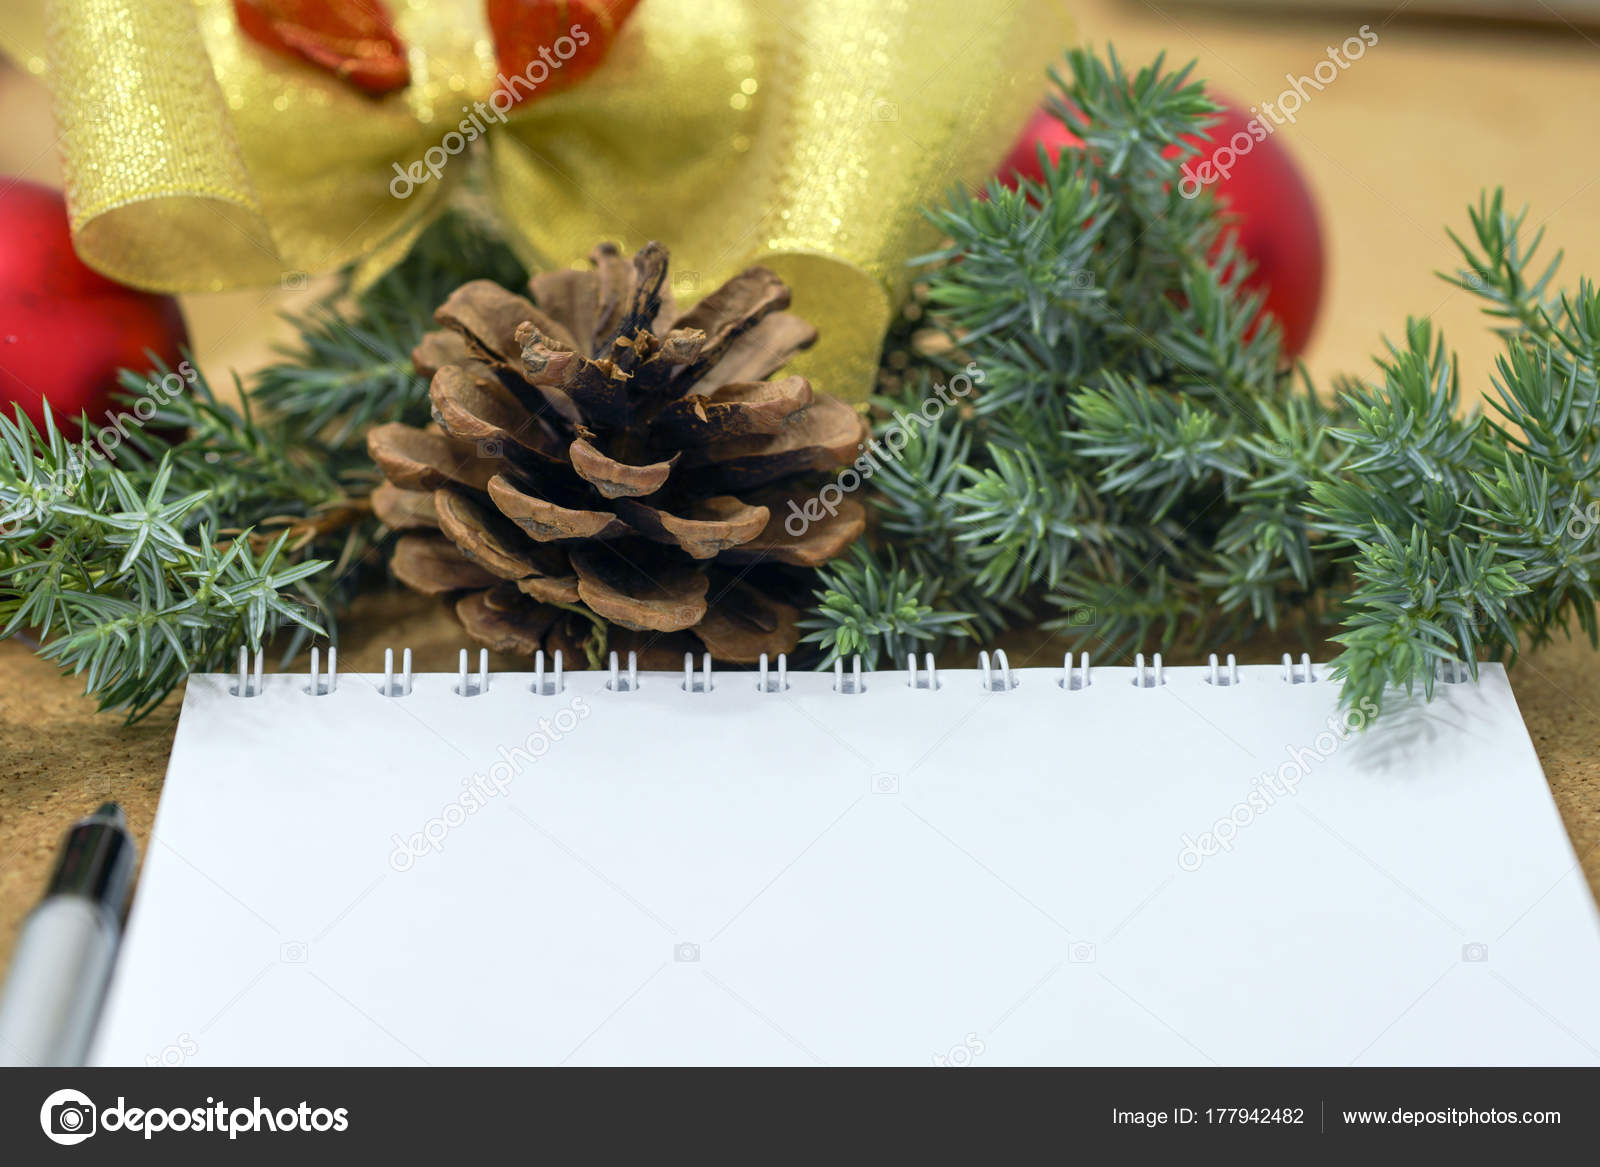 not completed list of goals in a notebook on a wooden table with christmas decorations and